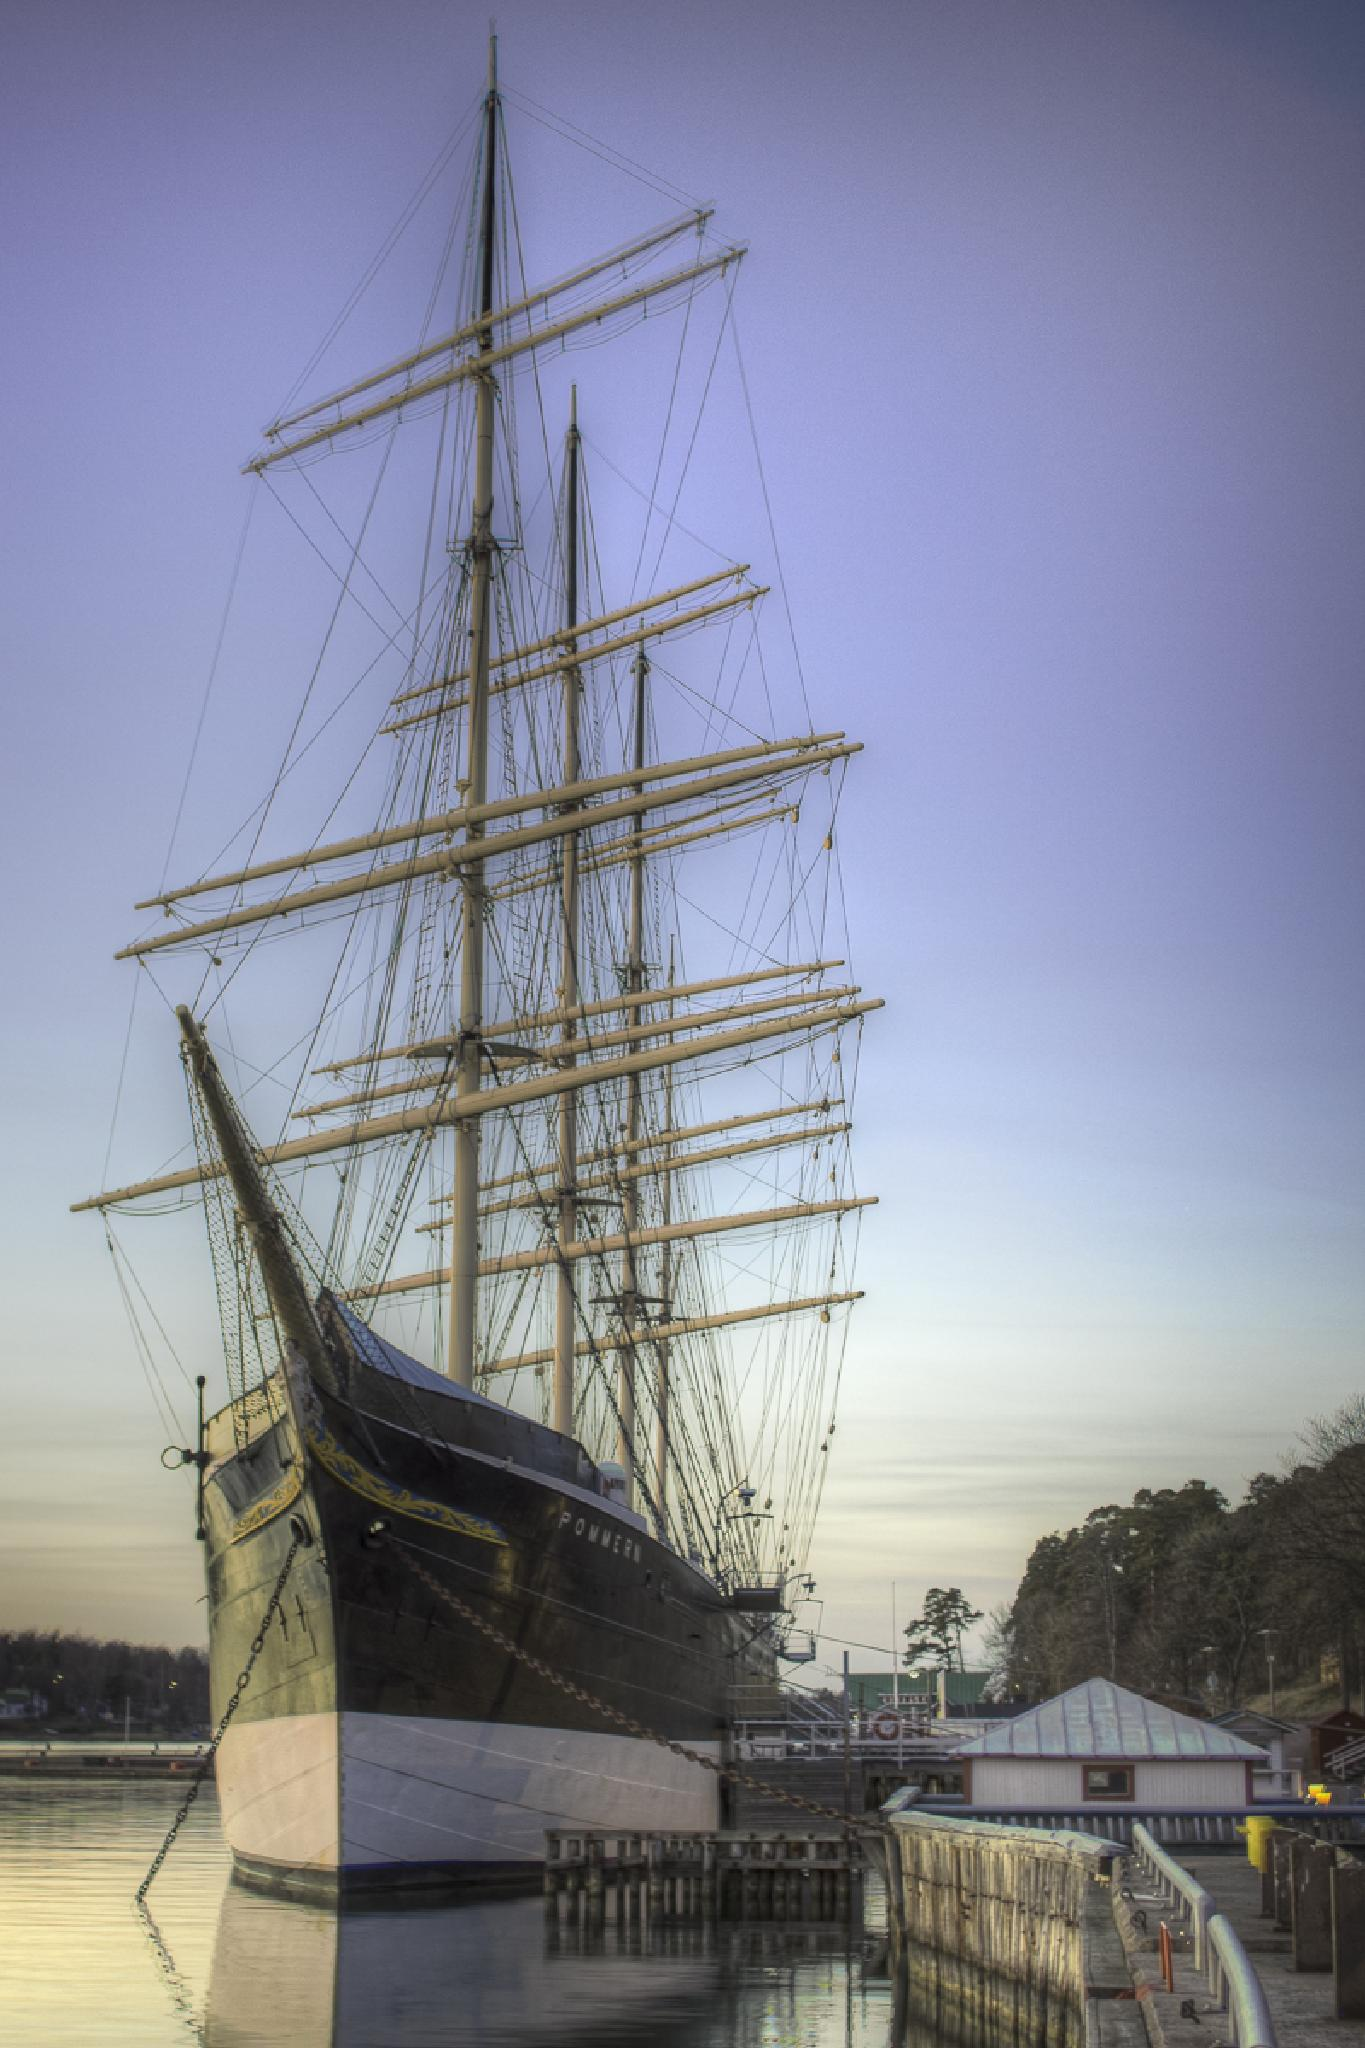 Pommern of Åland by ehnvision